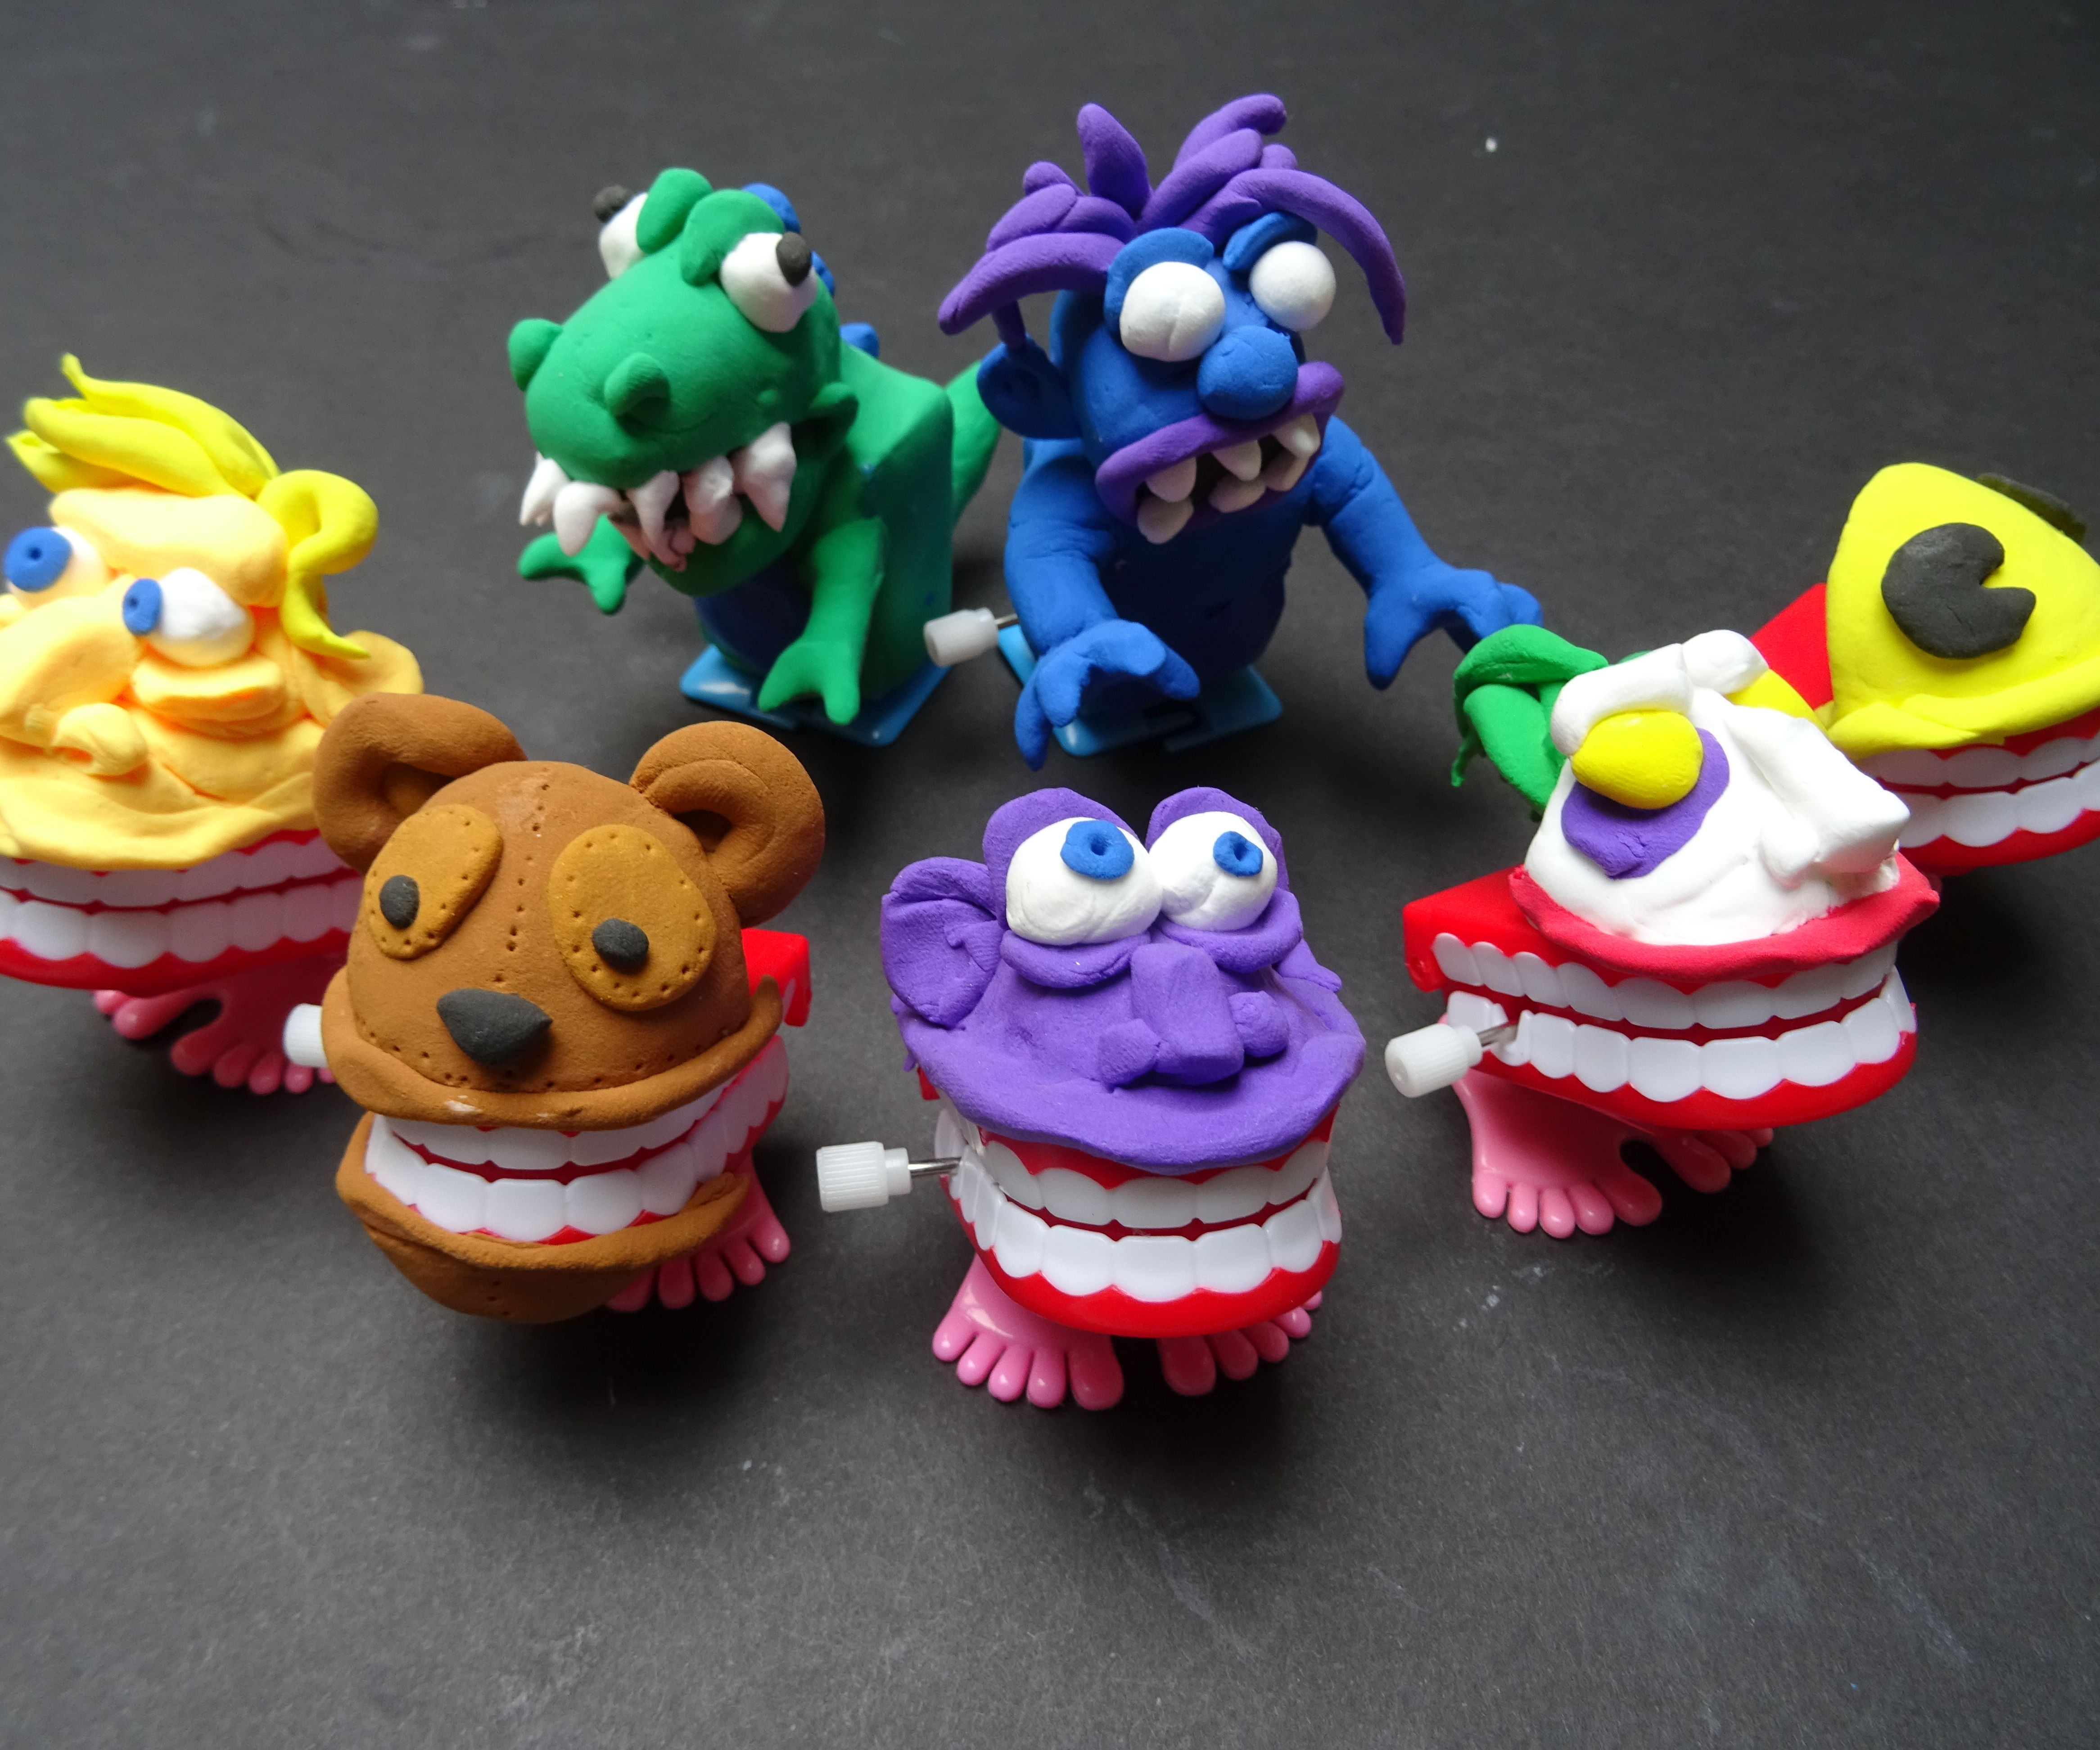 Soft clay wind up toys. Walkers and Chompers